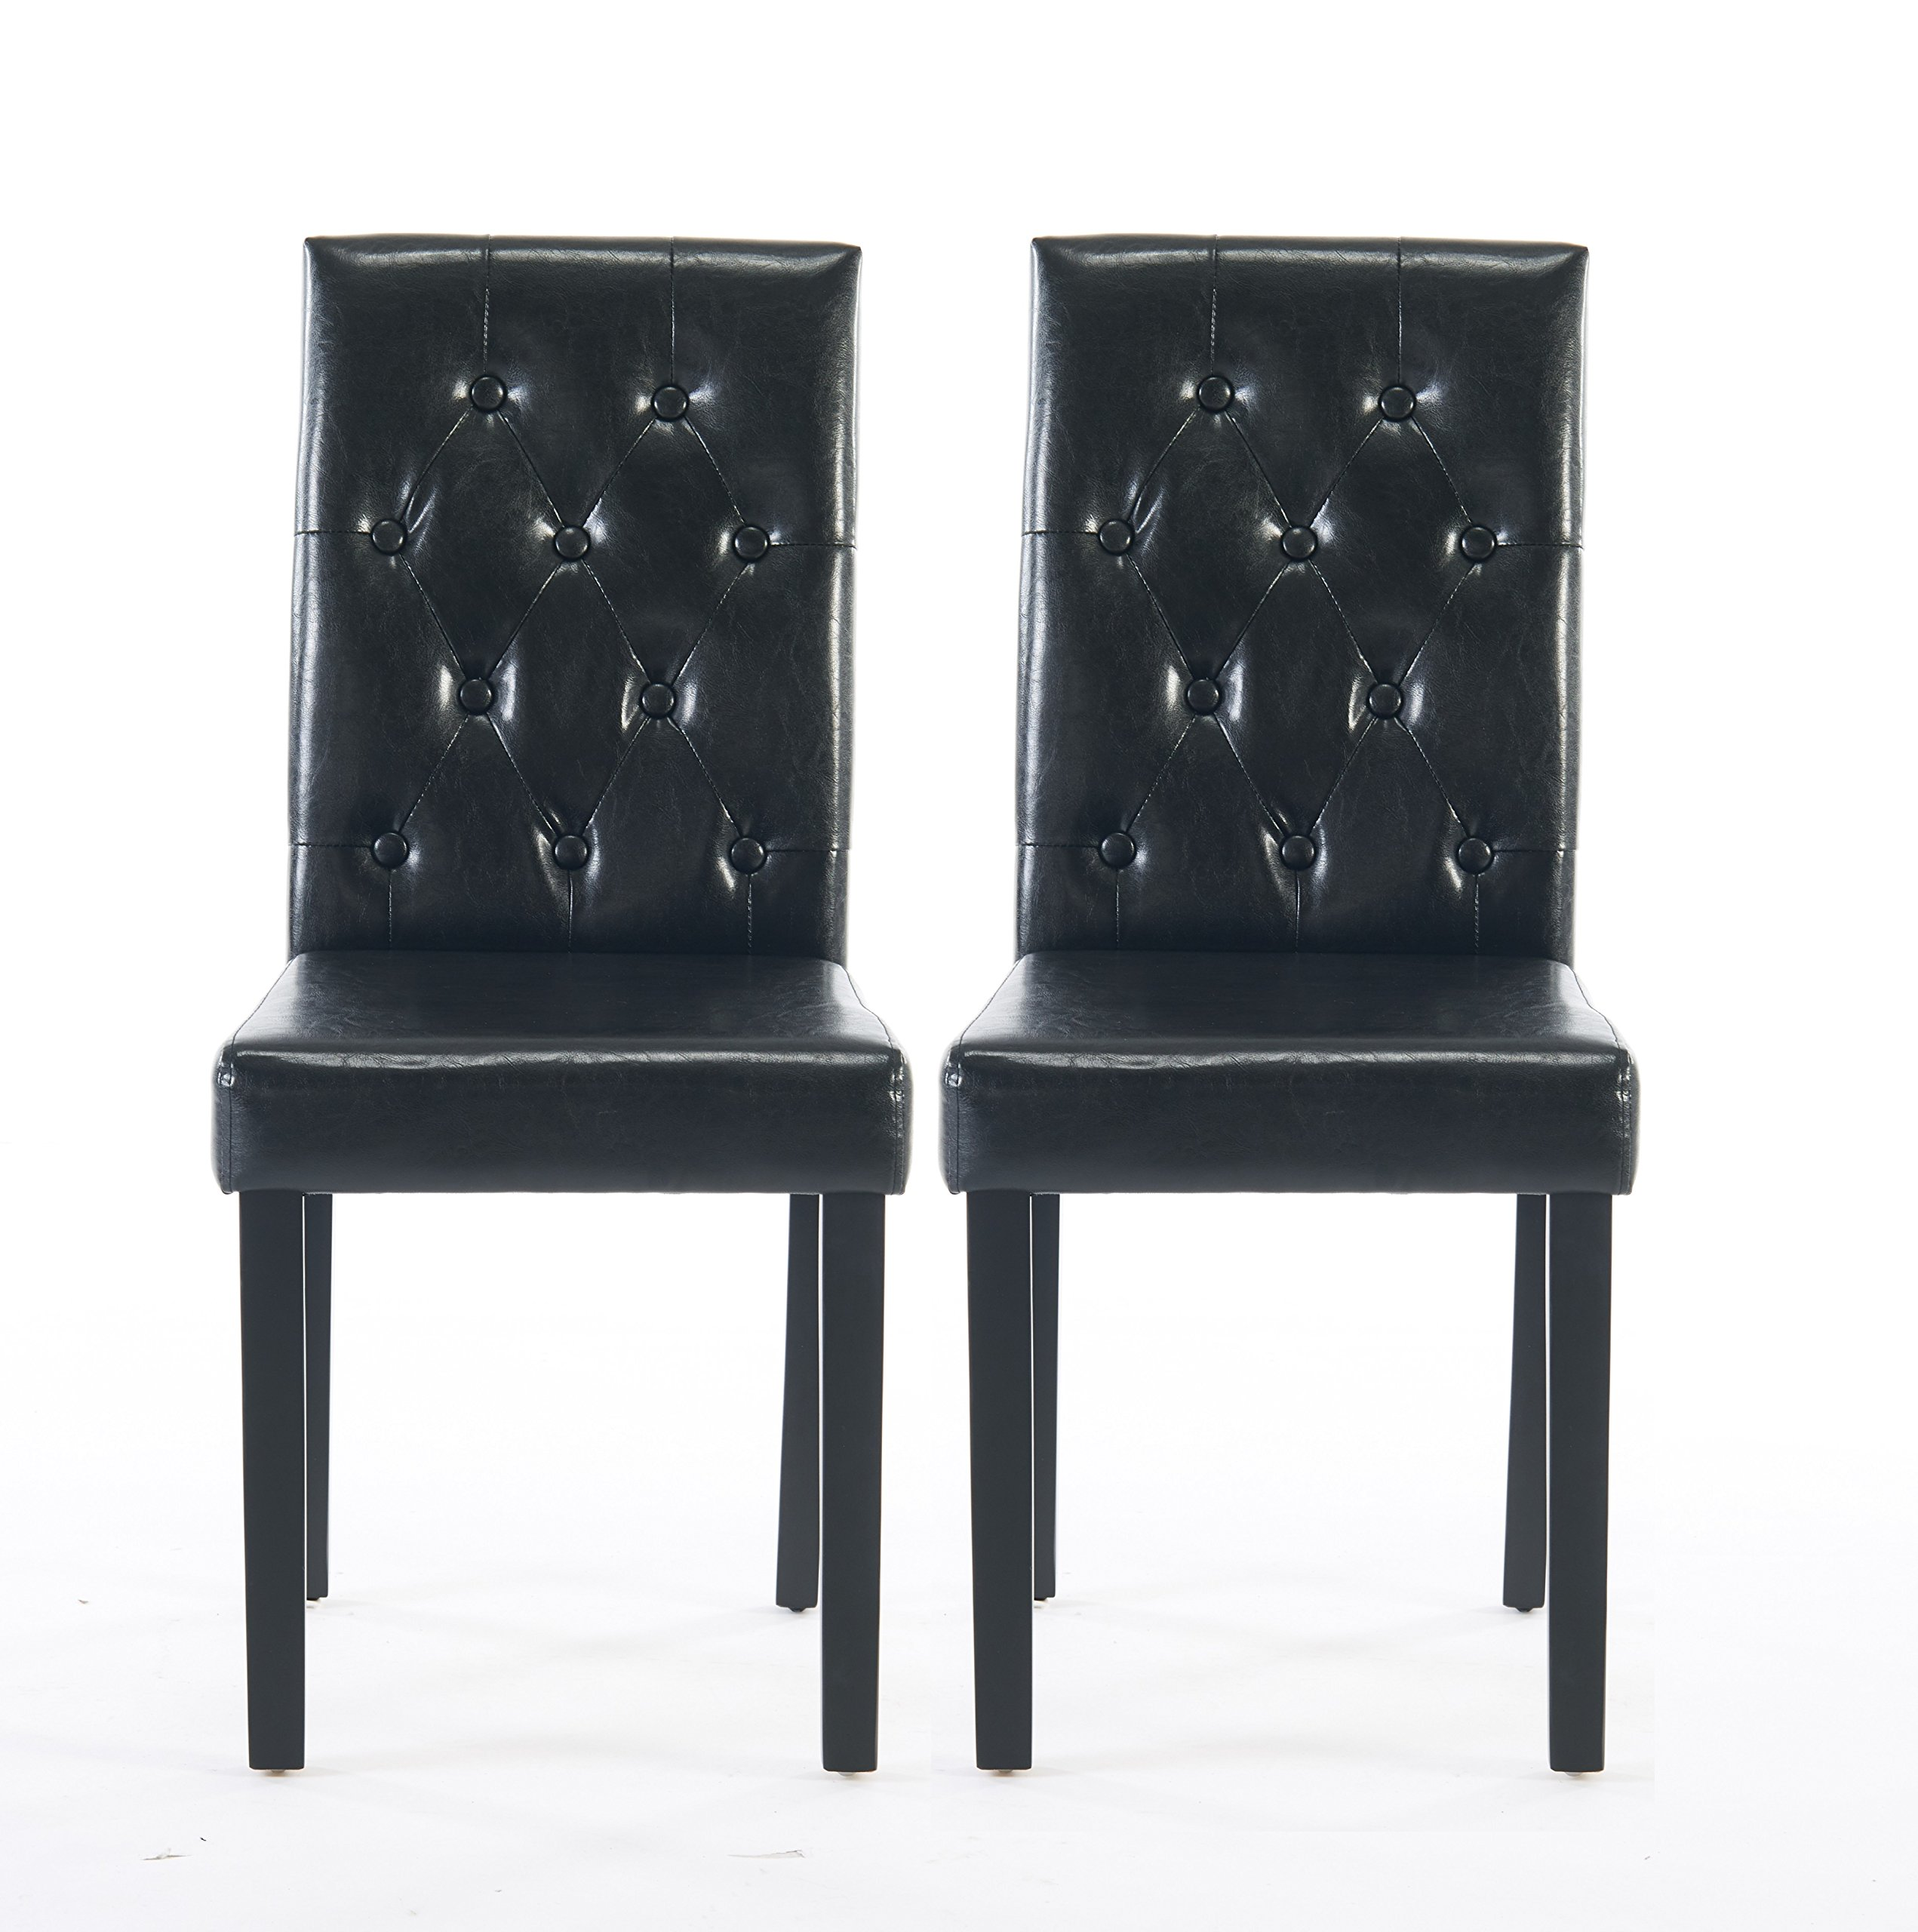 Comfortable Live New Modern Style Dining Chair in Home and Garden with Leather Set of 2(black) by Comfortable live (Image #1)